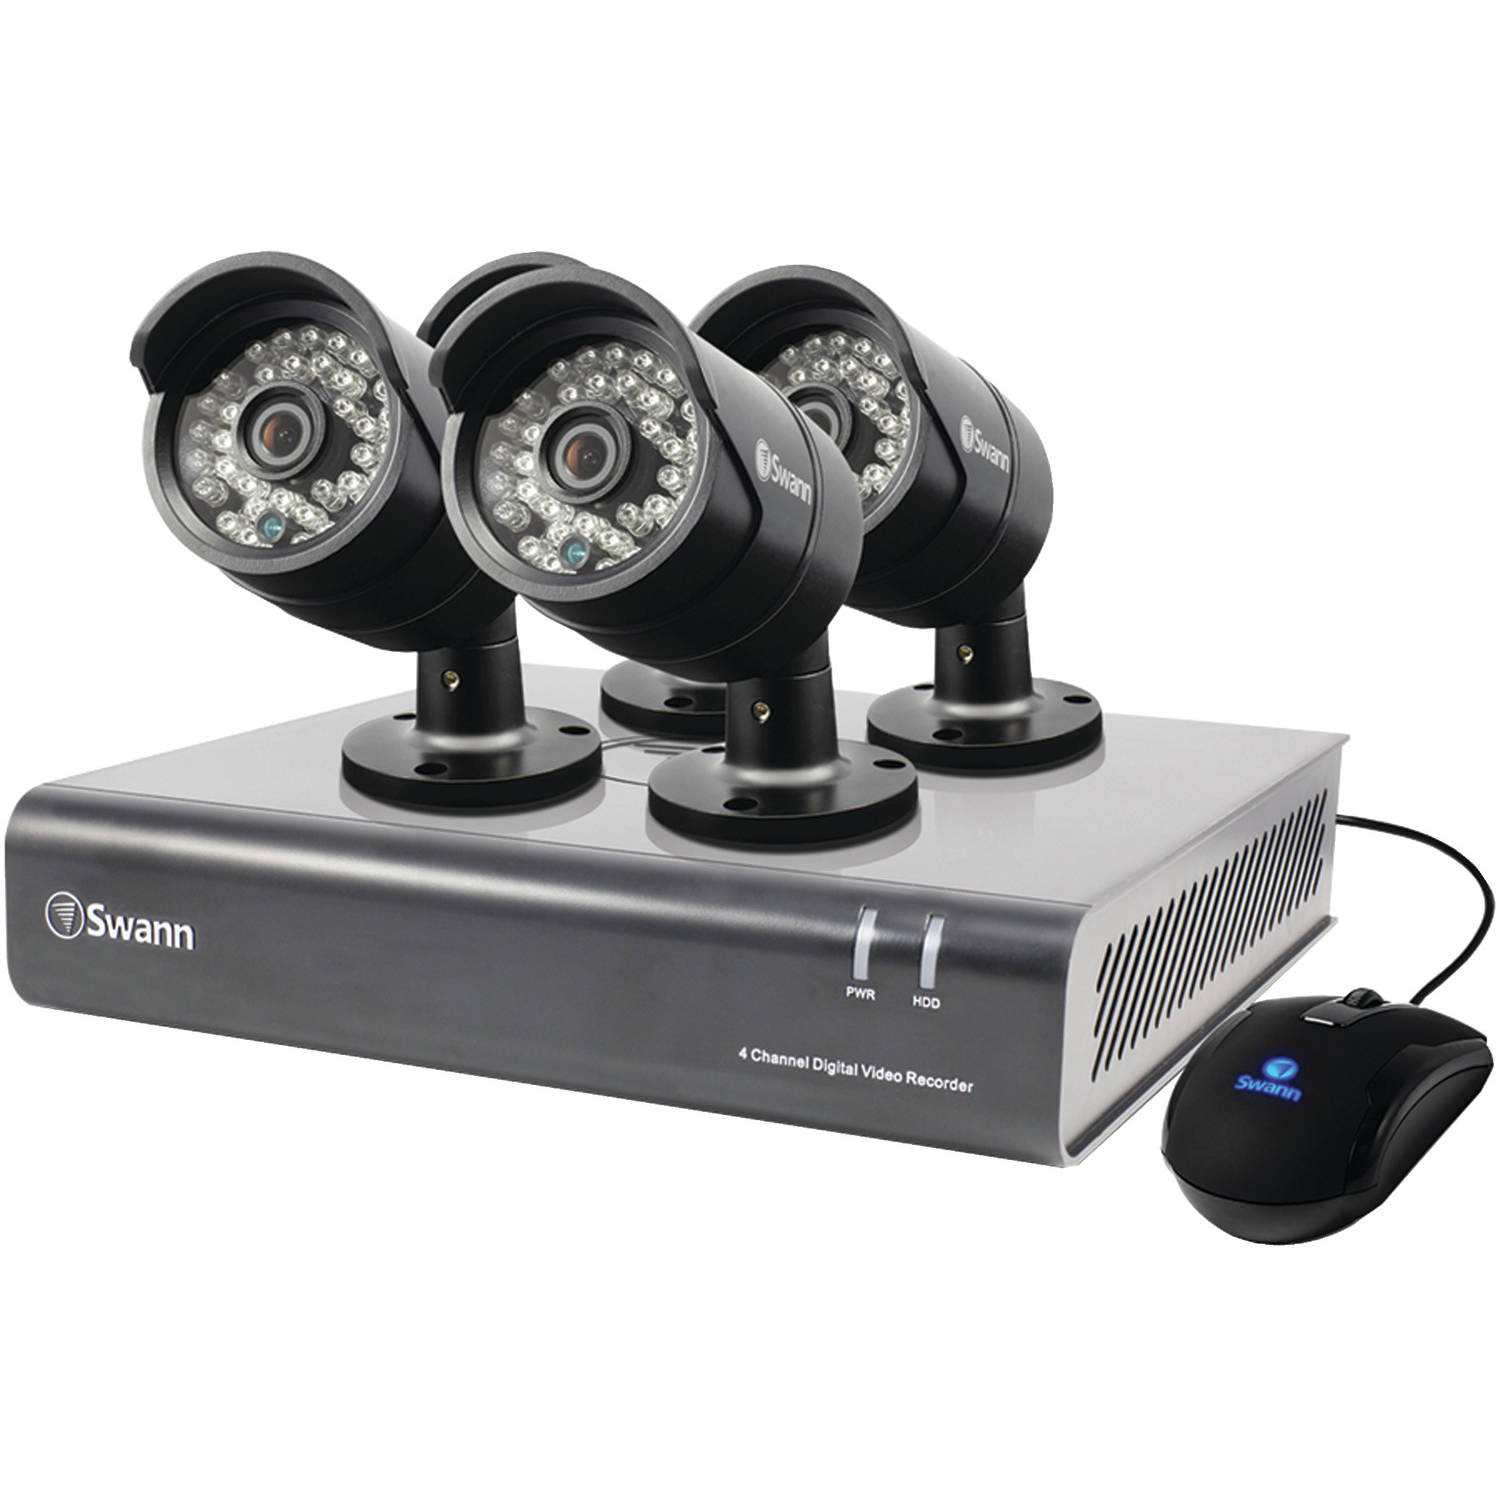 Swann Swdvk-444004-us 4-Channel 720p DVR with Four 720p PRO-A850 Cameras